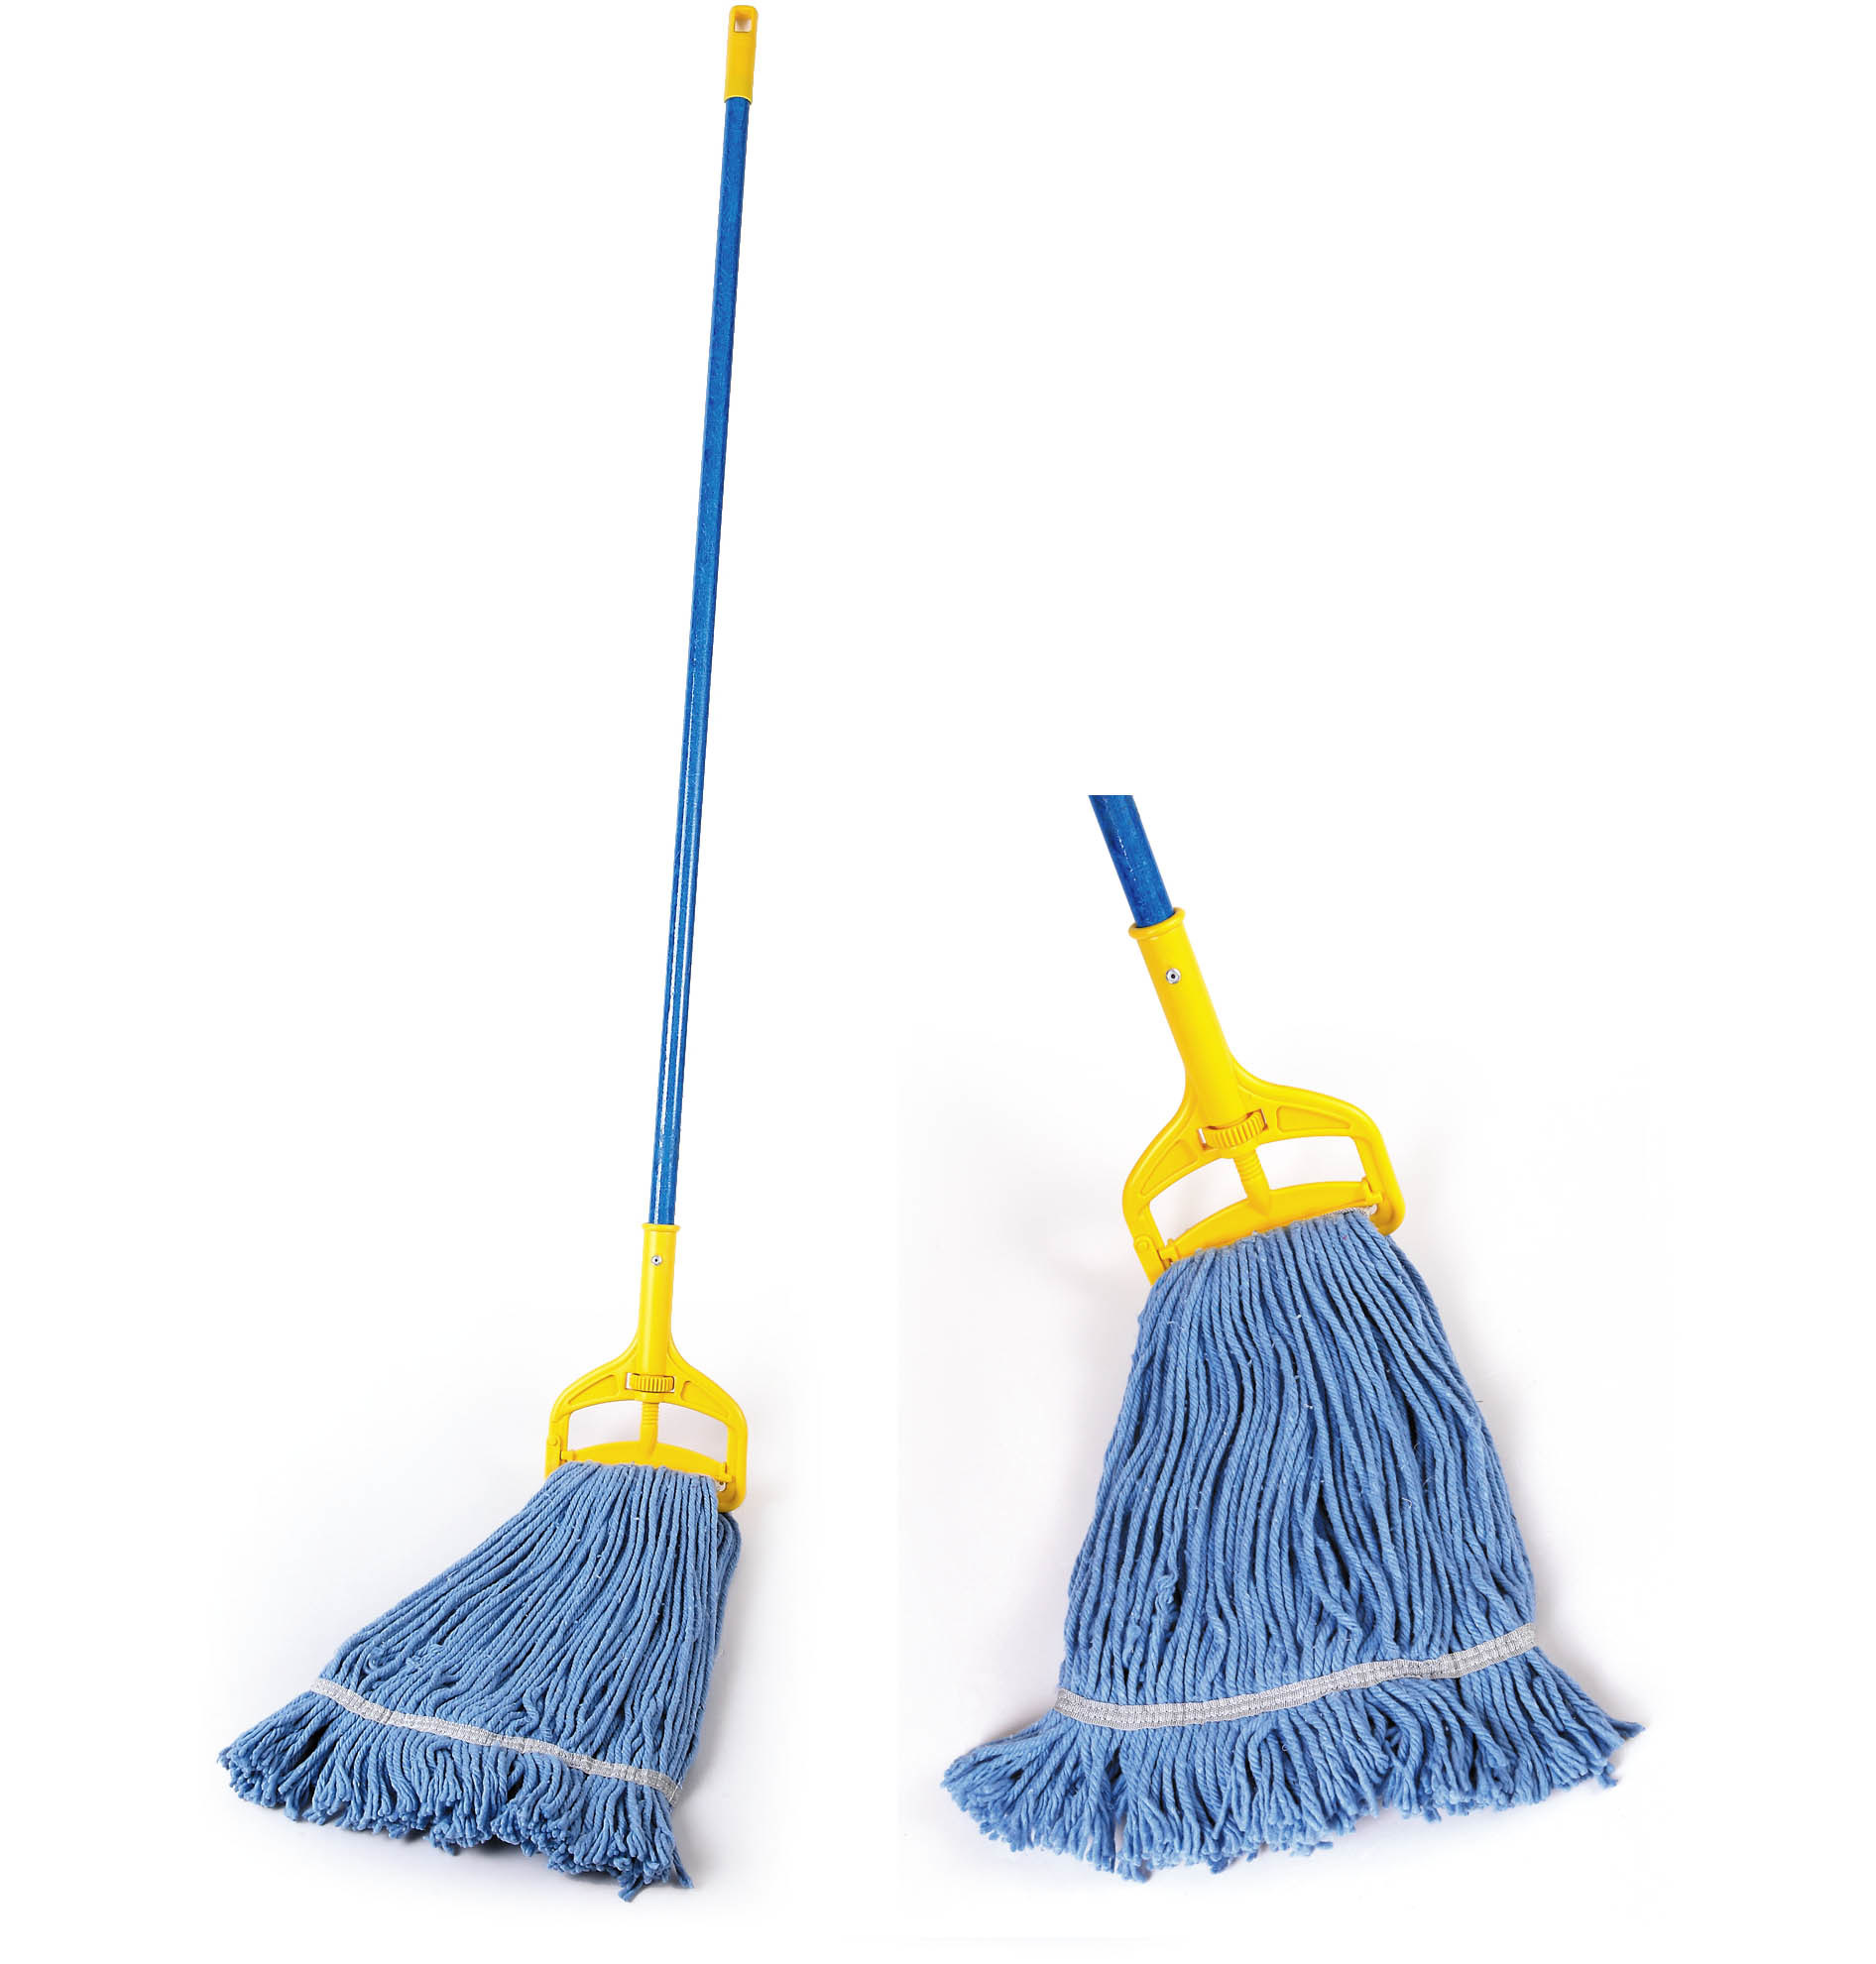 Commercial Mop : ... Cotton Mop With Aluminum Handle (60132) - China Mop, Commercial Mop